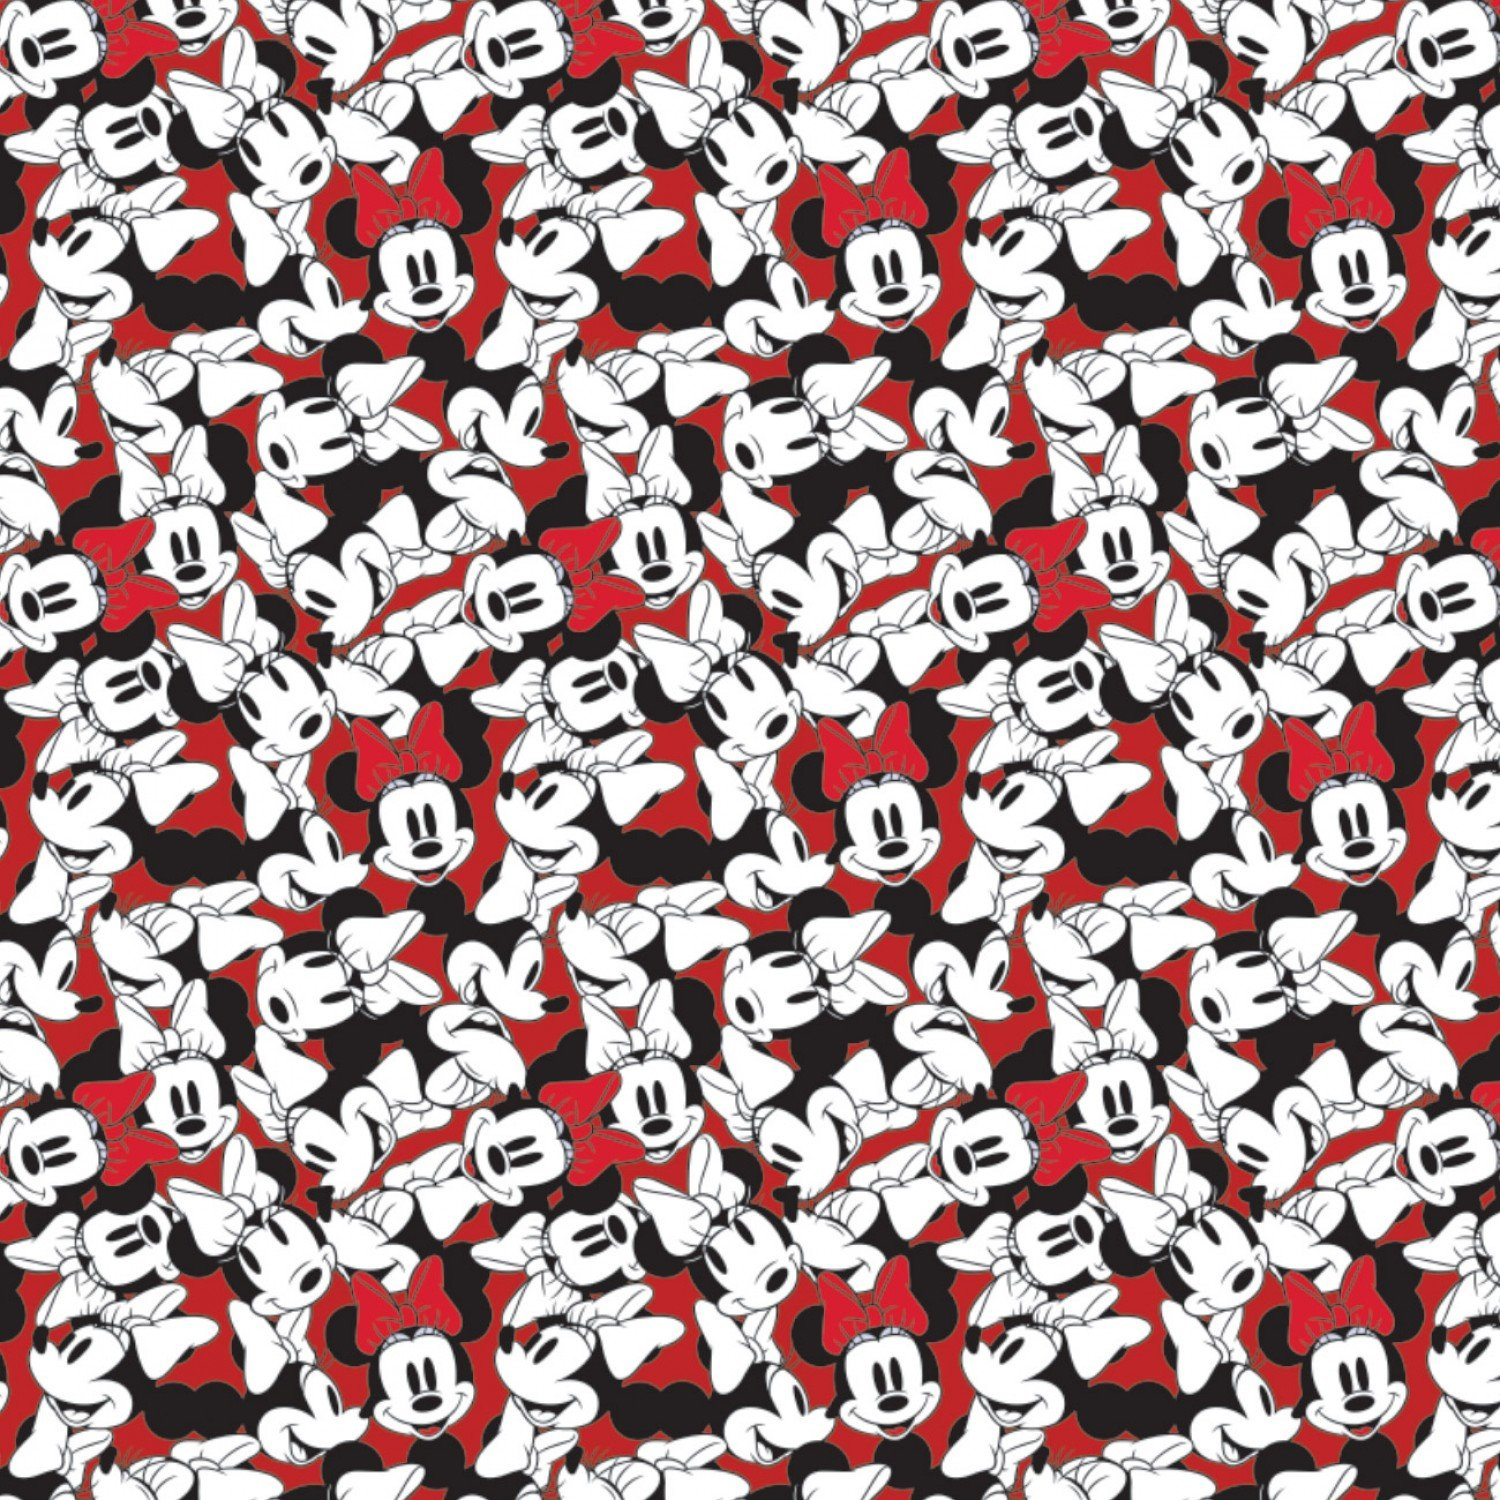 Minnie Mouse Fabric 85271010 02 Red